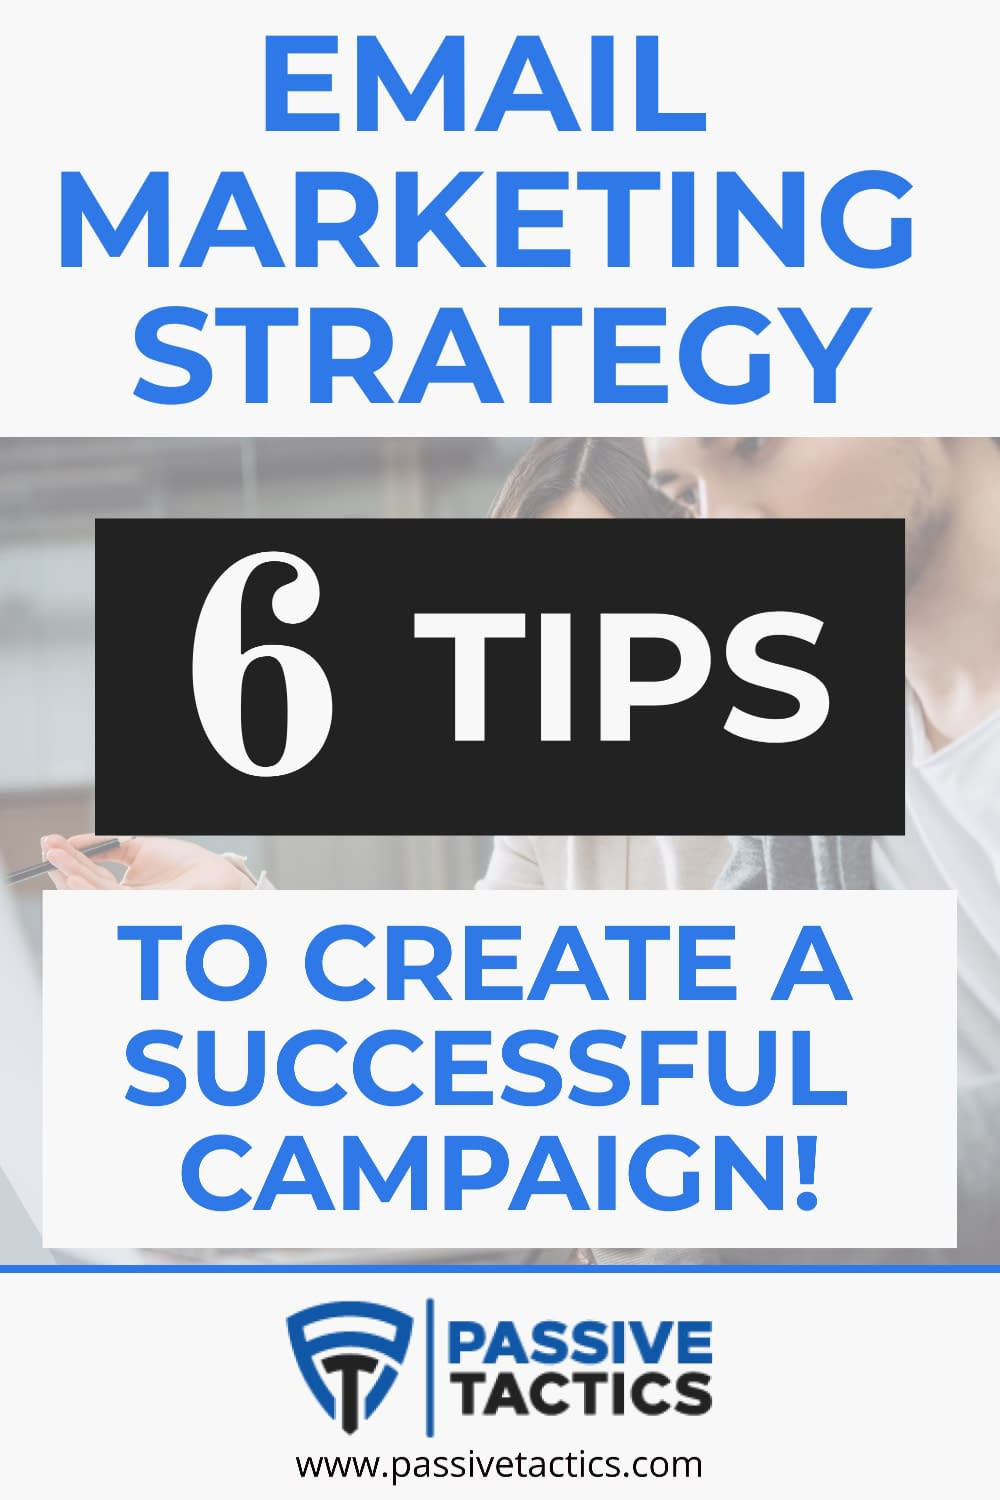 Email Marketing Strategy: Tips To Create A Successful Campaign!